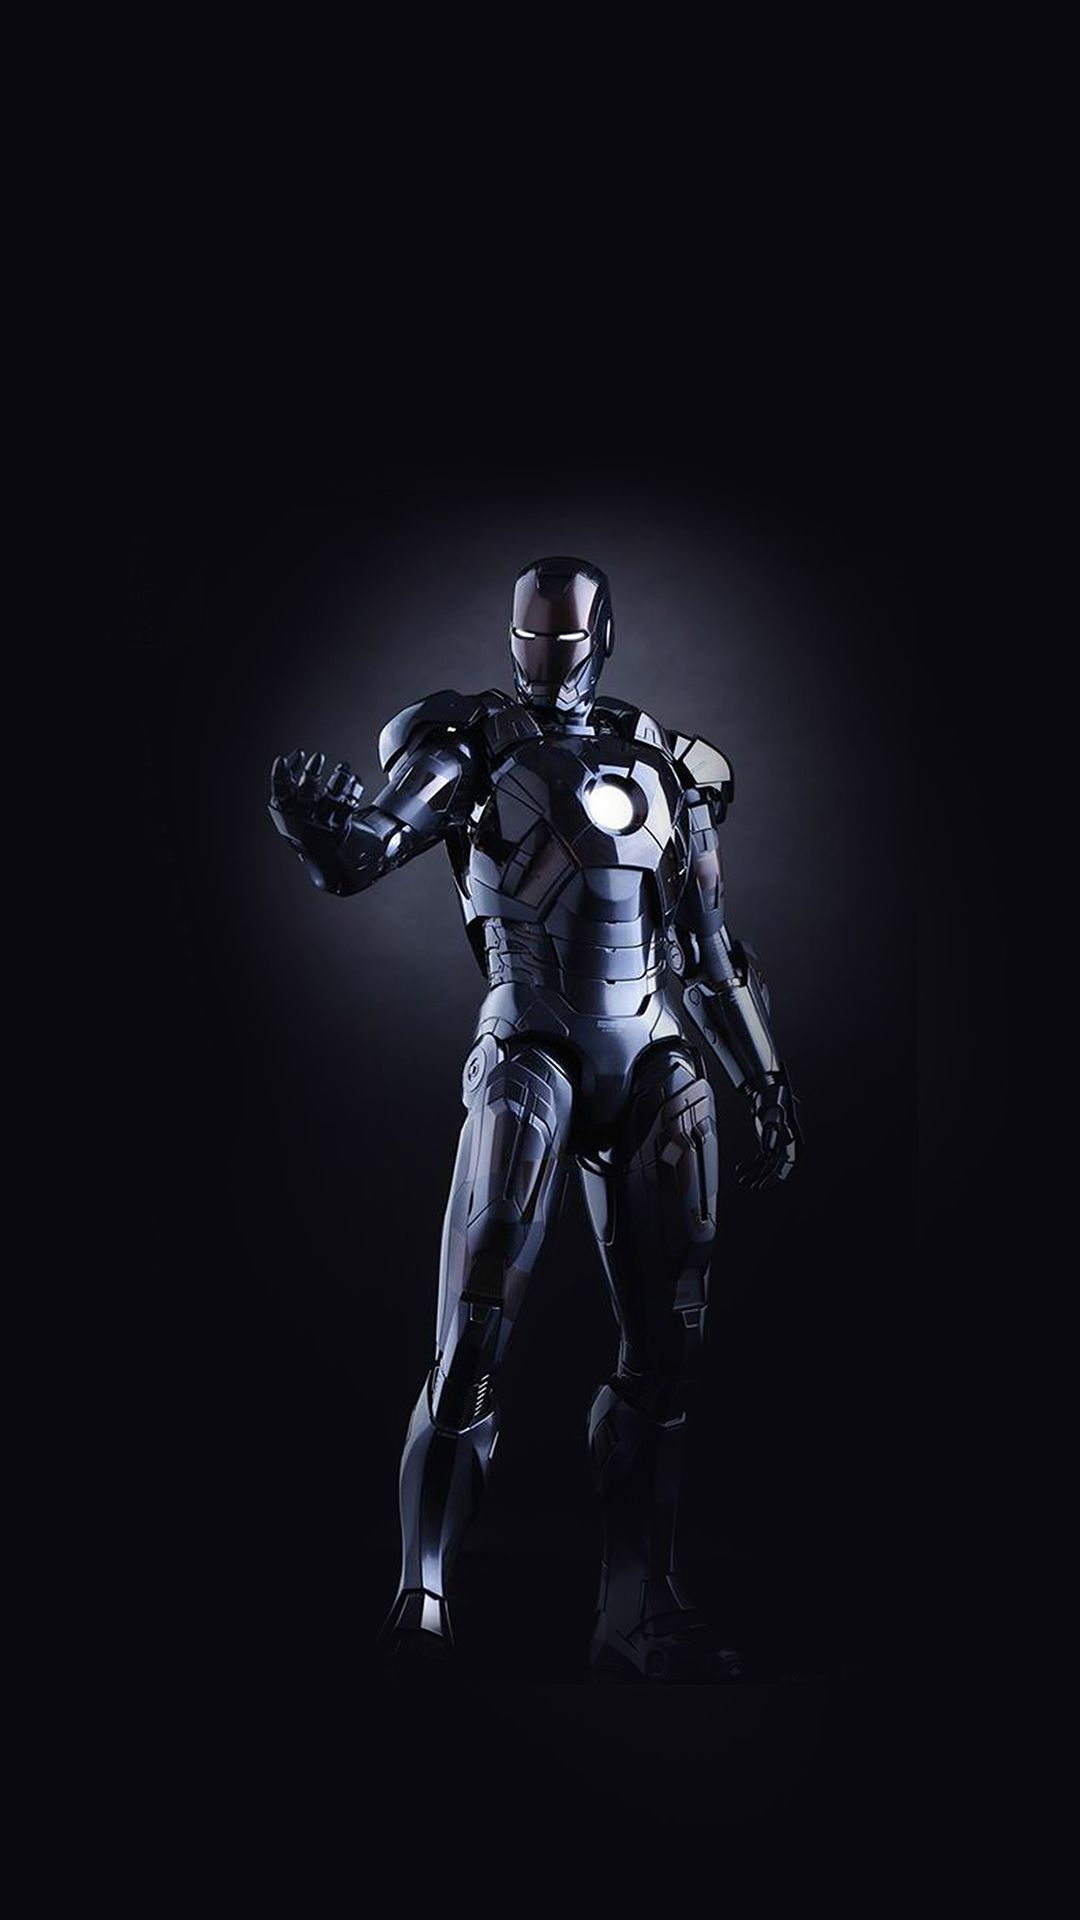 Wallpaper iphone hq - Ironman Dark Figure Hero Art Avengers Iphone 6 Wallpaper